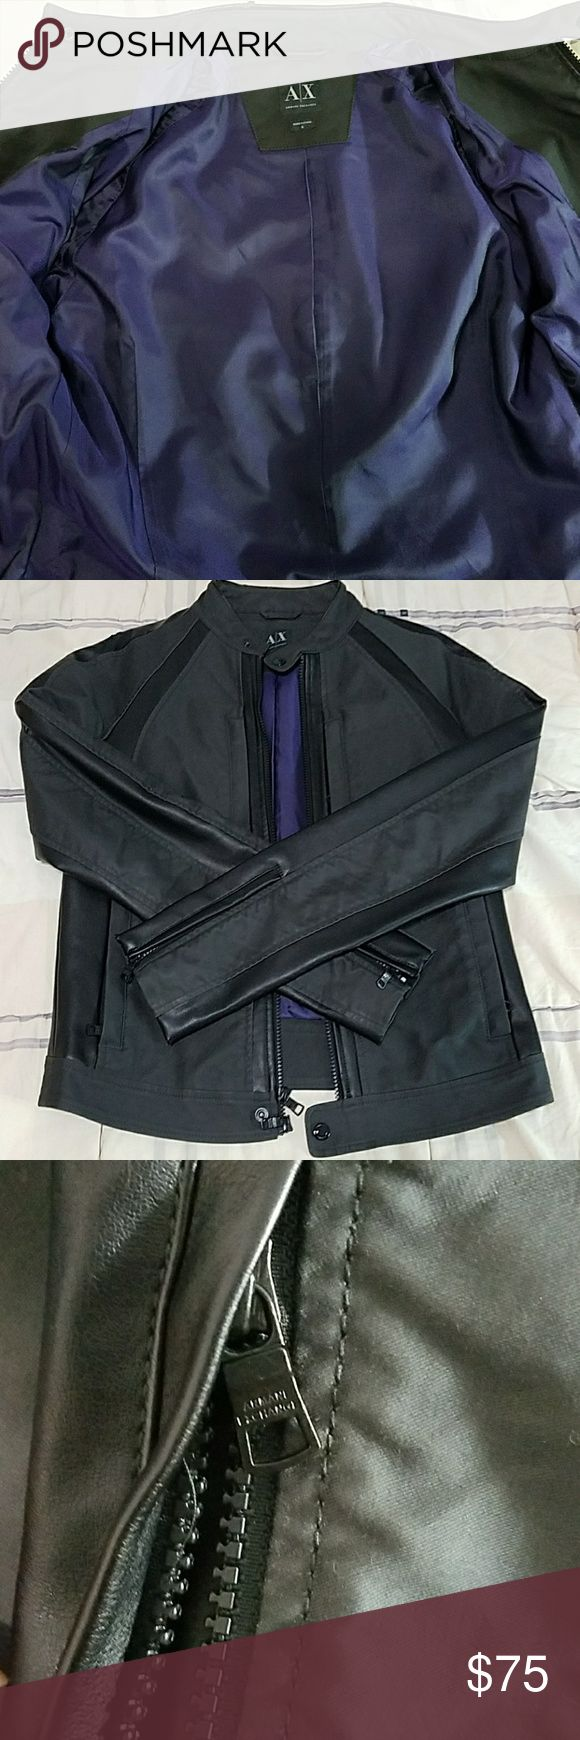 Armani Exchange Leather Jacket AX leather jacket, worn a few times since its typically hot, but the shoulder and neck leather pieces have worn over the years. Circa 2009. Ask for more pics if necessary! Armani Exchange Jackets & Coats